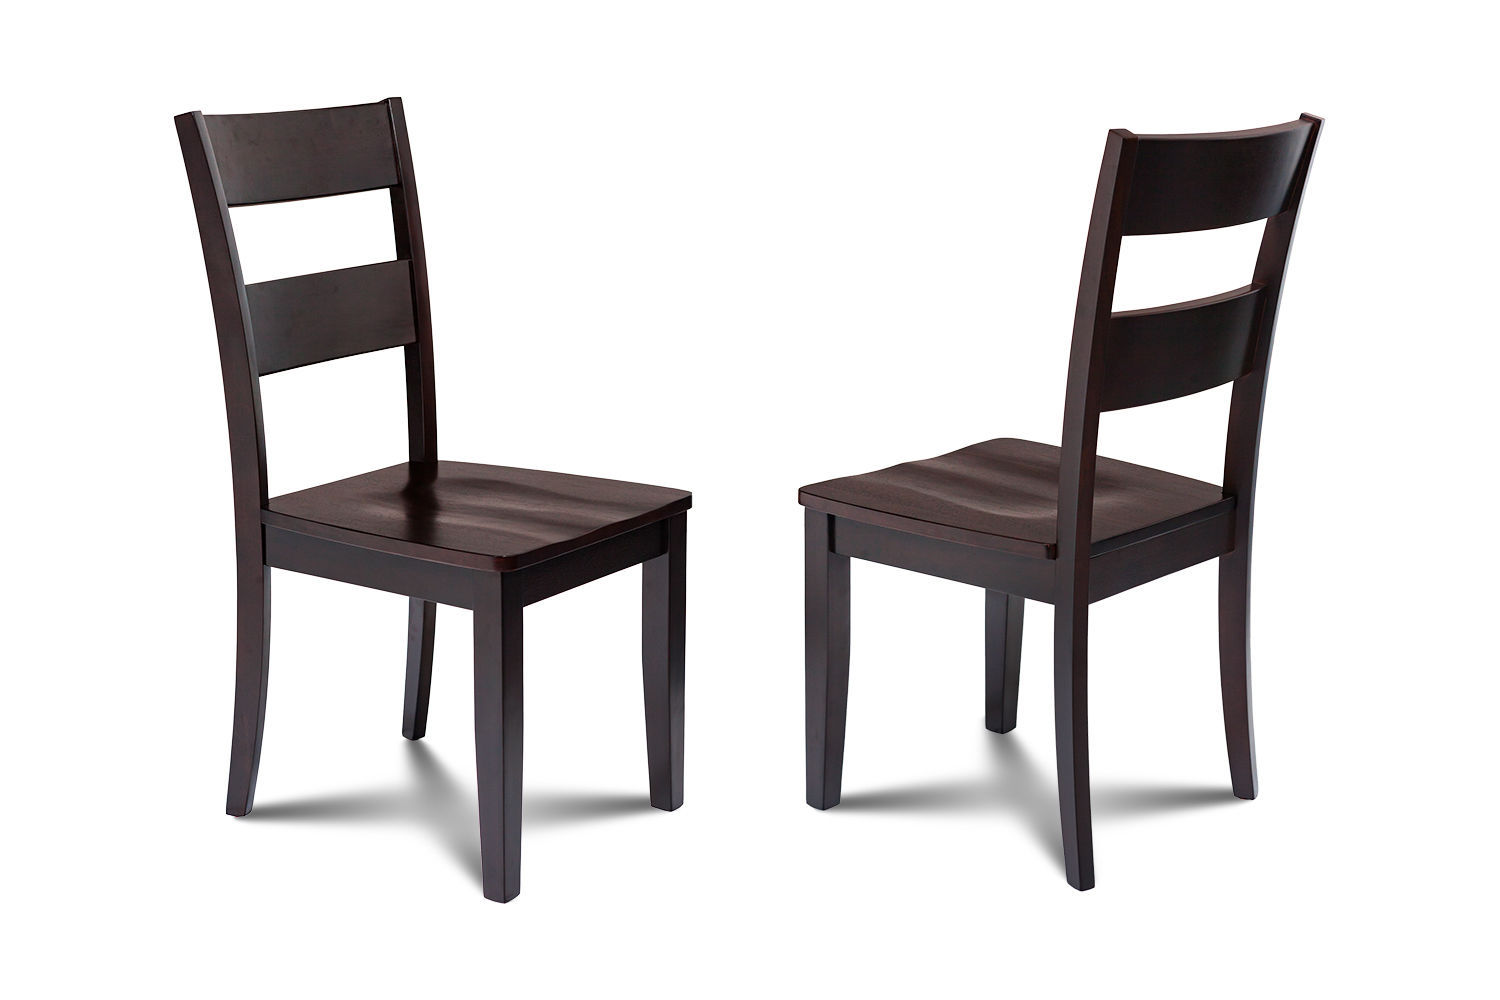 SET OF 4 KITCHEN DINING SIDE CHAIRS w/ WOODEN SEAT IN CAPPUCCINO